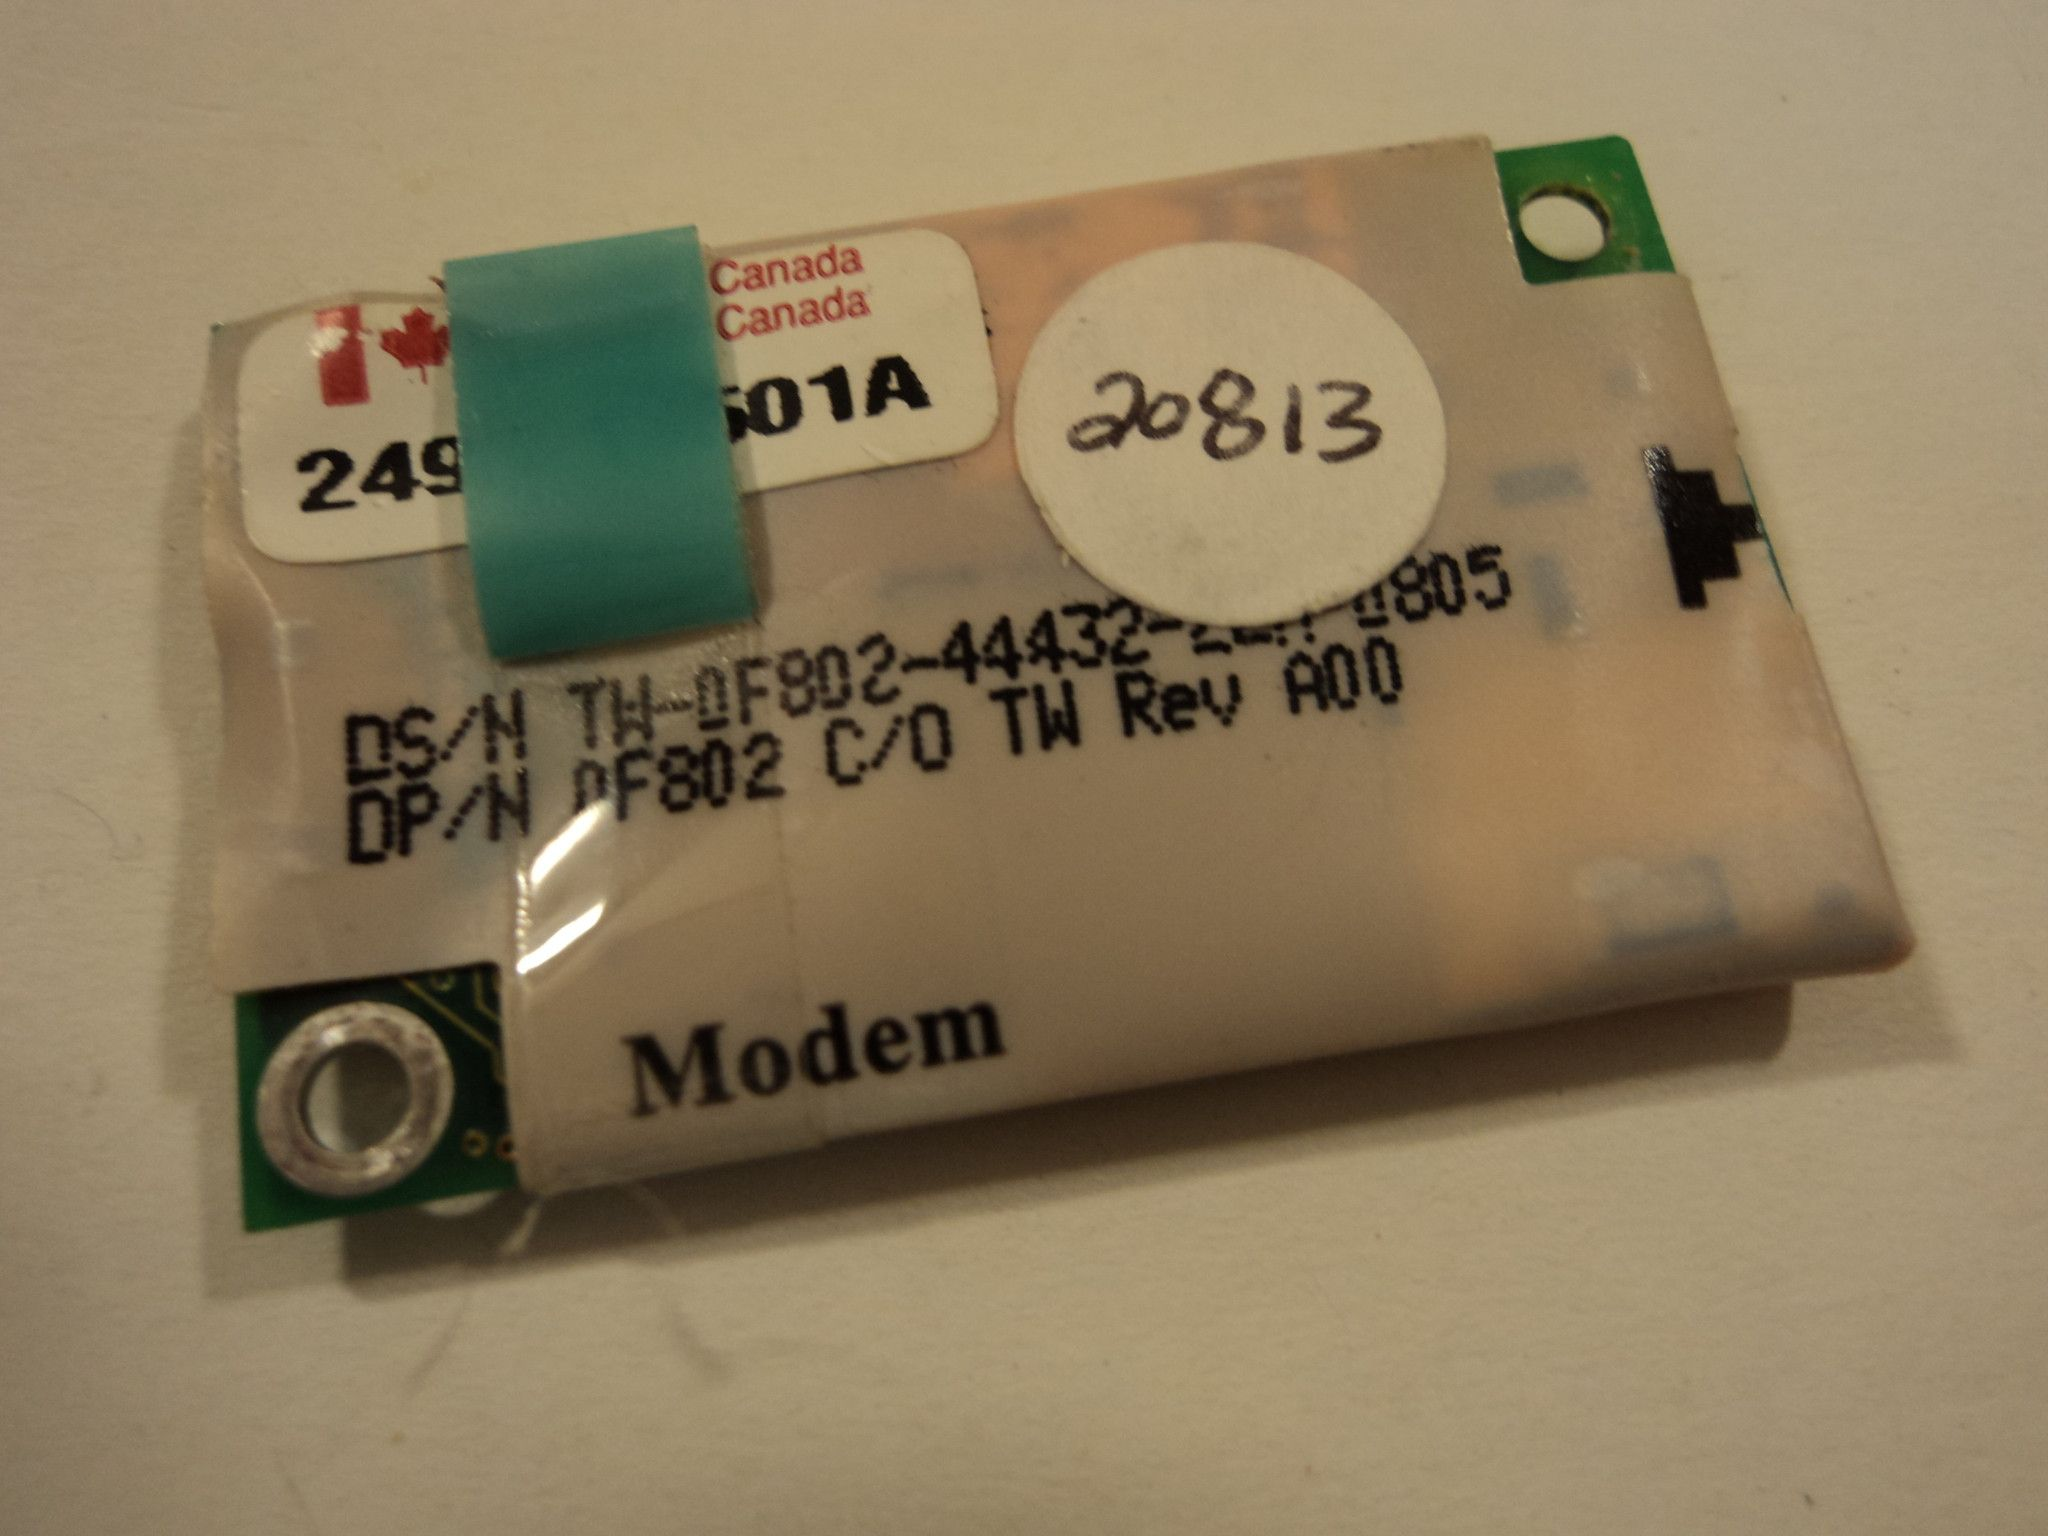 ActionTec Modem Card Green 3.1A OF802 Dell 249611501A MD560RD -- New